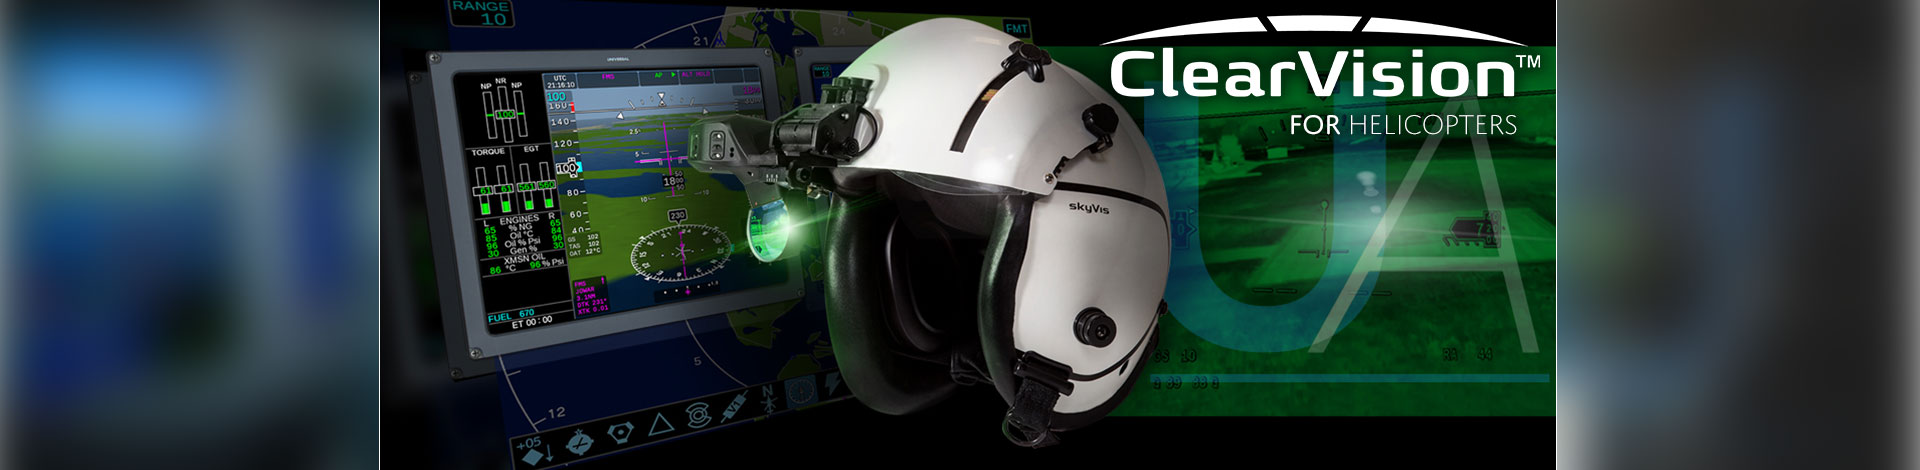 ClearVision for Helicopters